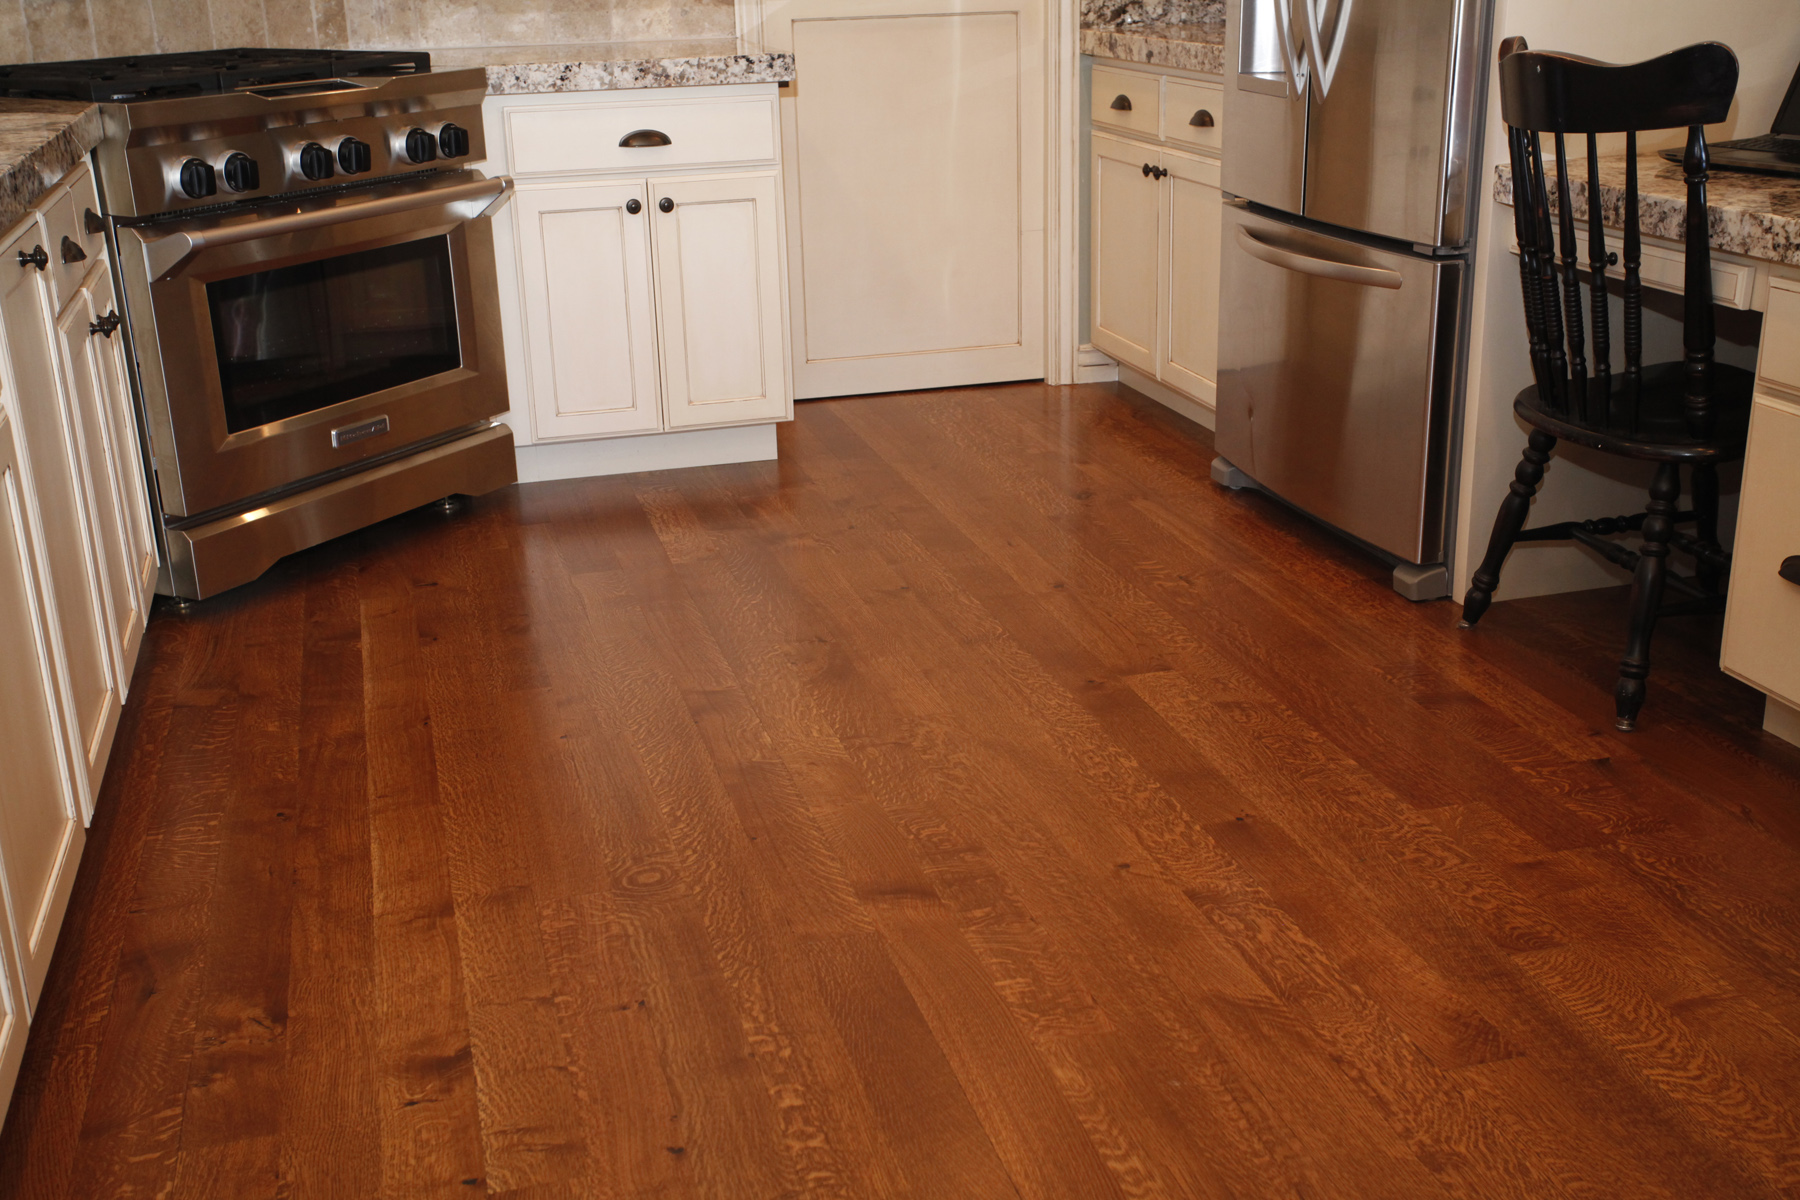 Carson s custom hardwood floors utah hardwood flooring for Wood floors in kitchen